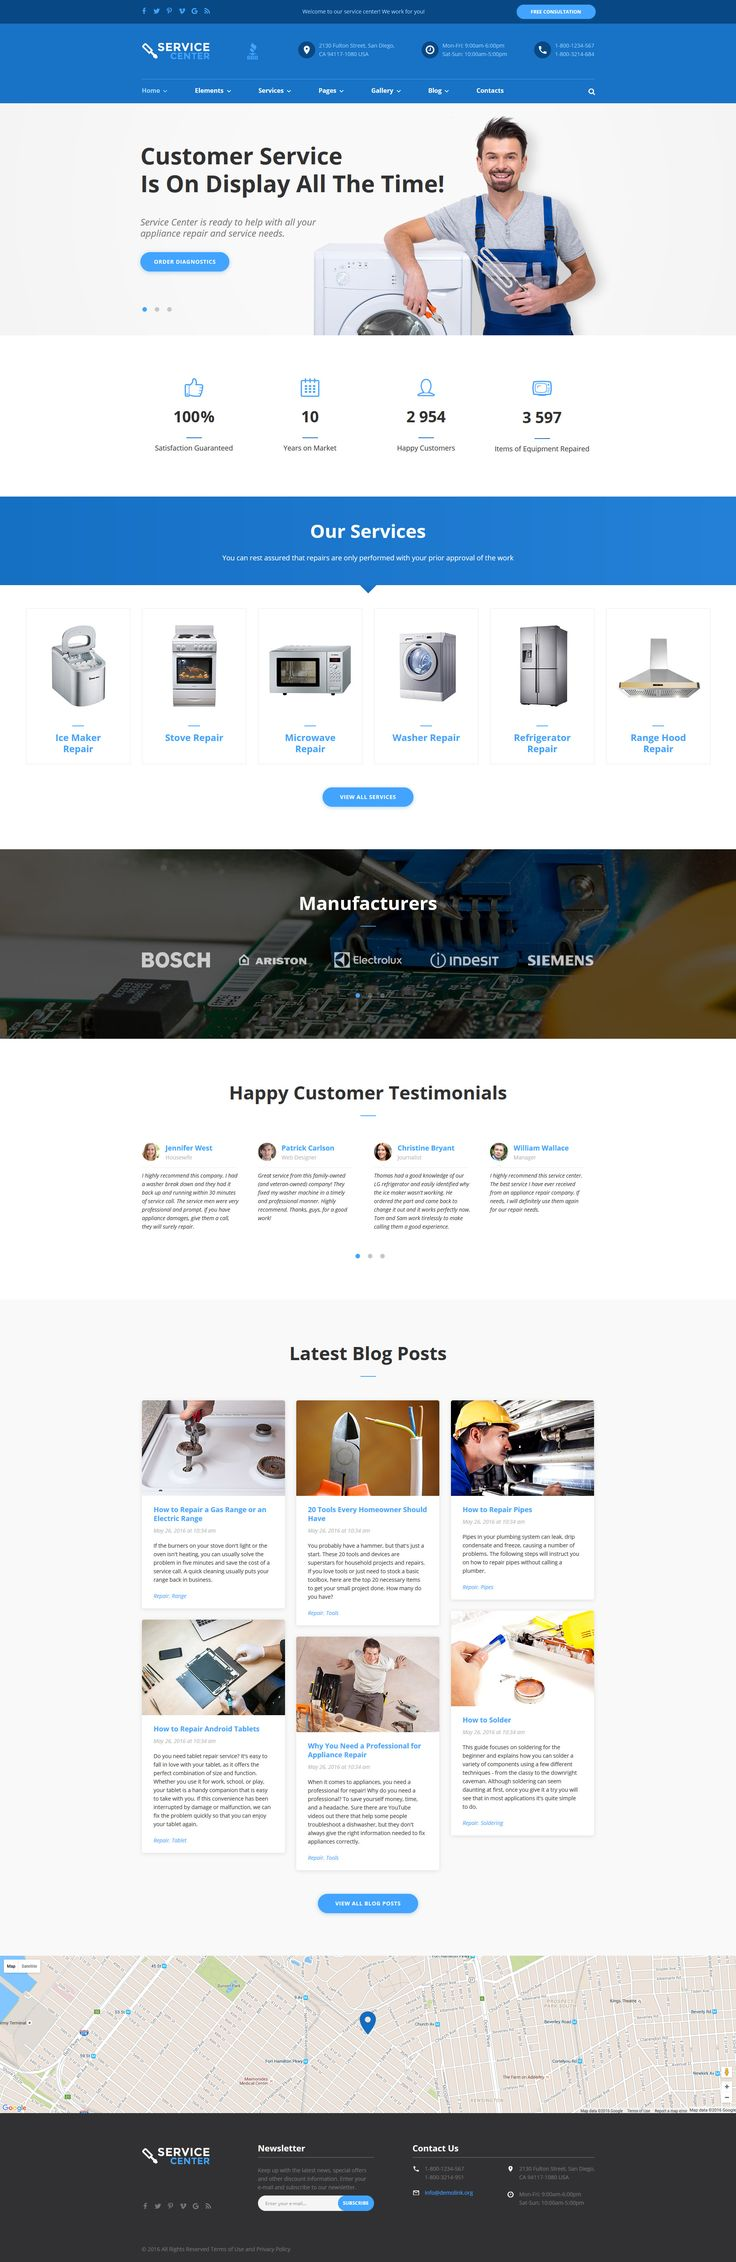 Home Repairs Responsive Website Template http://www.templatemonster.com/website-templates/home-repairs-responsive-website-template-58972.html